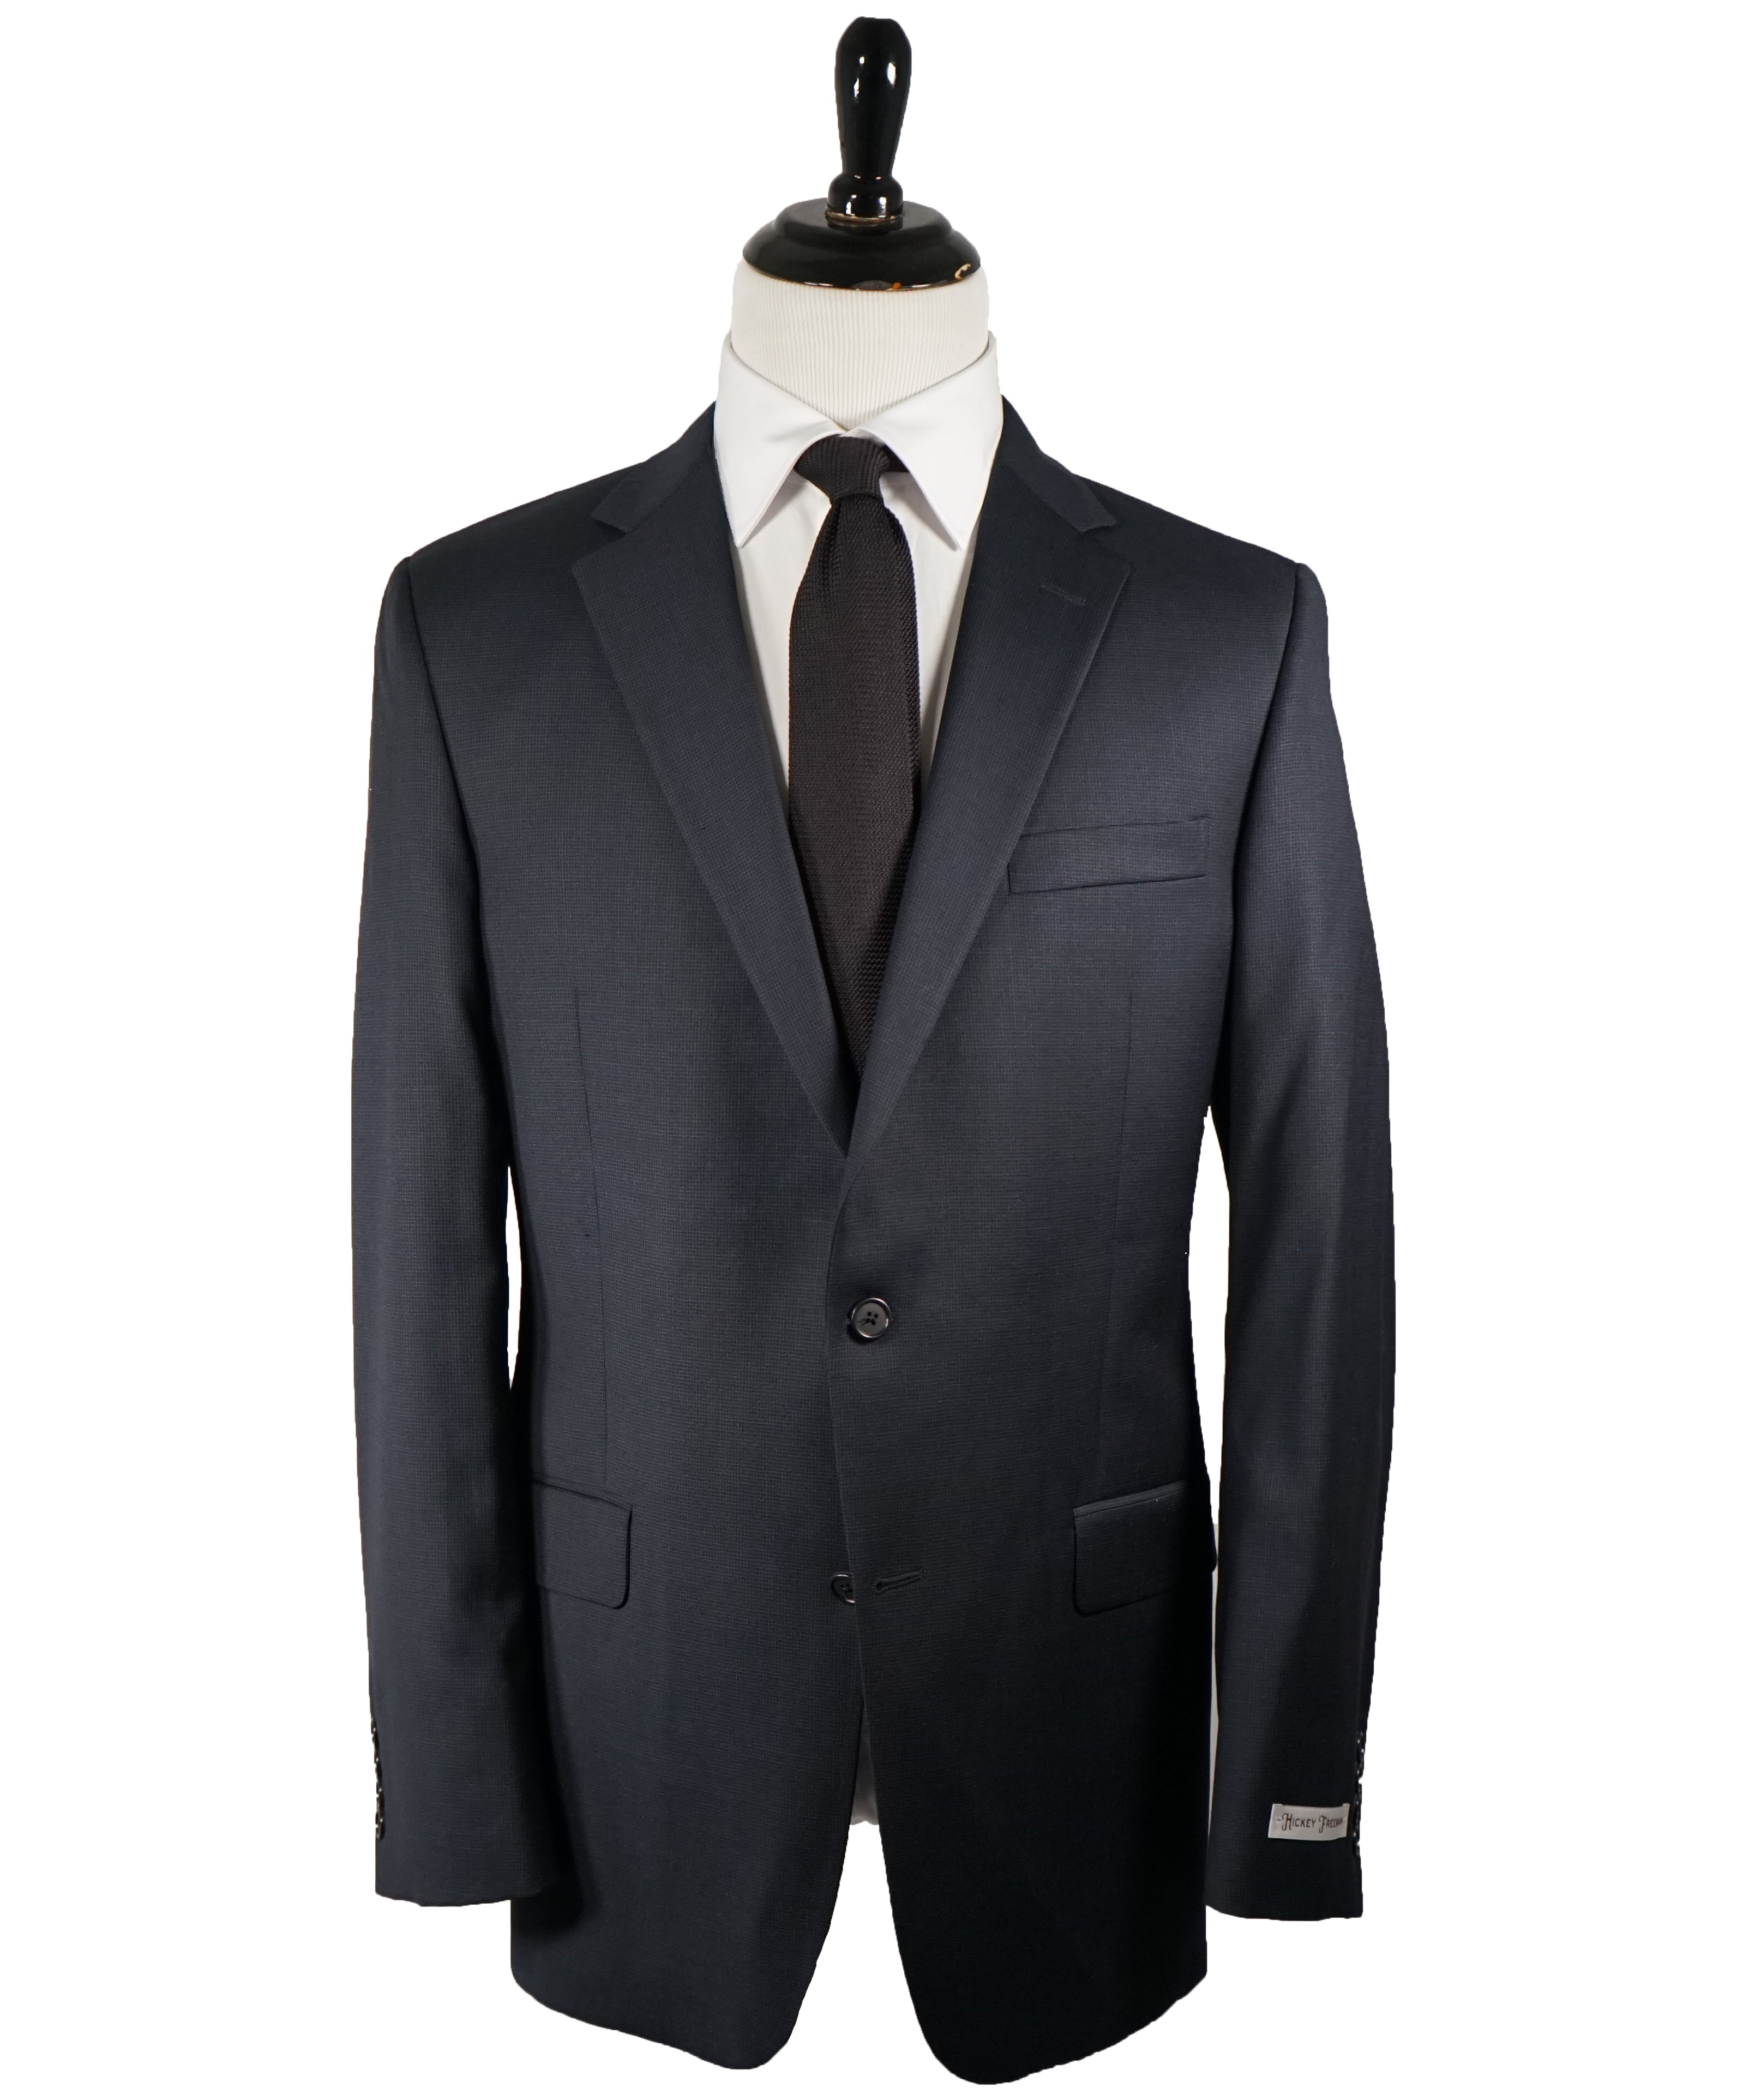 HICKEY FREEMAN - Navy Blue Textured Micro Check Suit - 42L